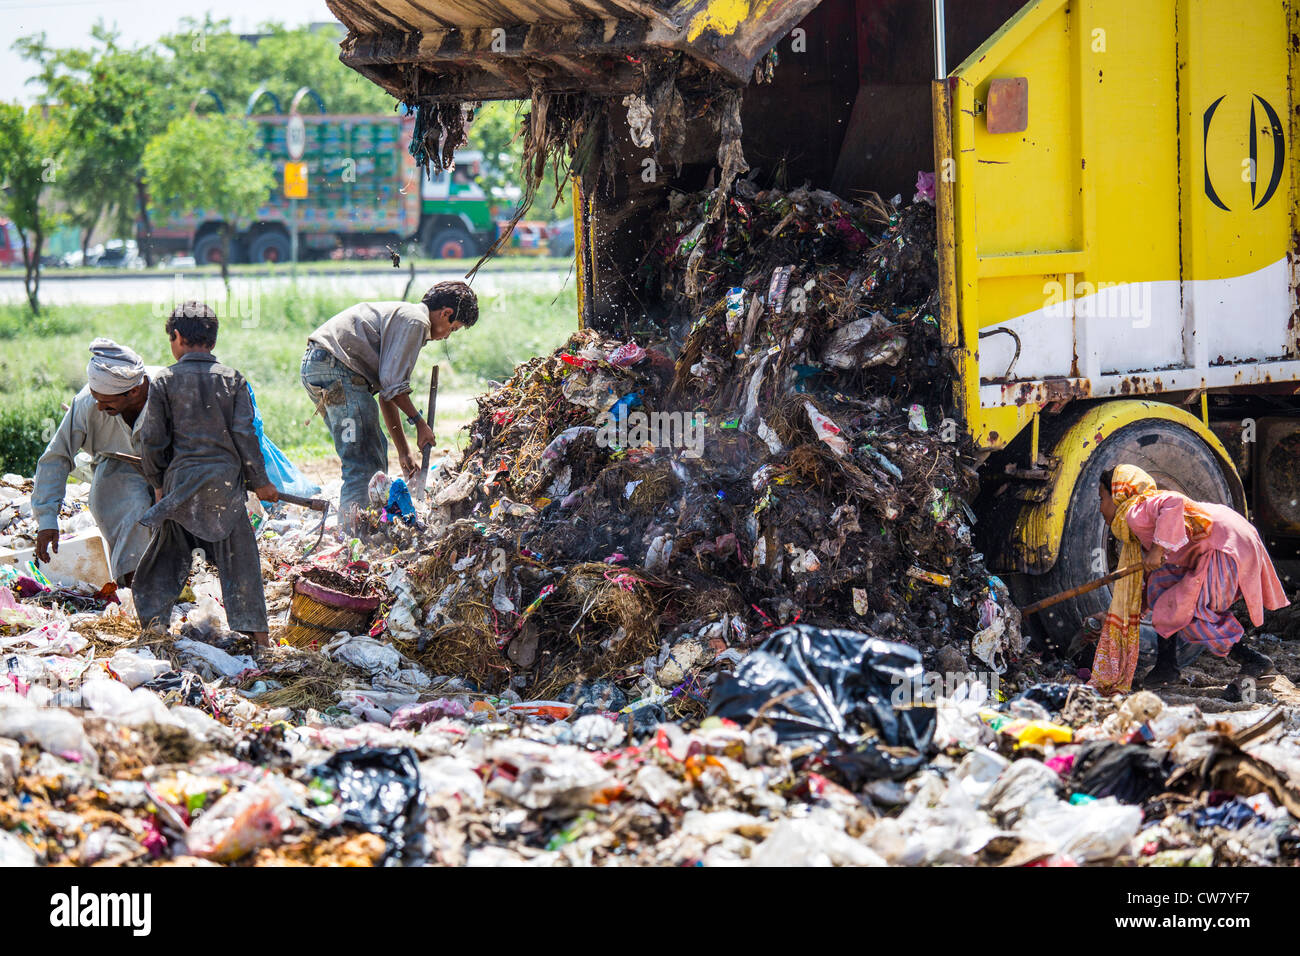 Waste Pickers in Islamabad, Pakistan Stockbild